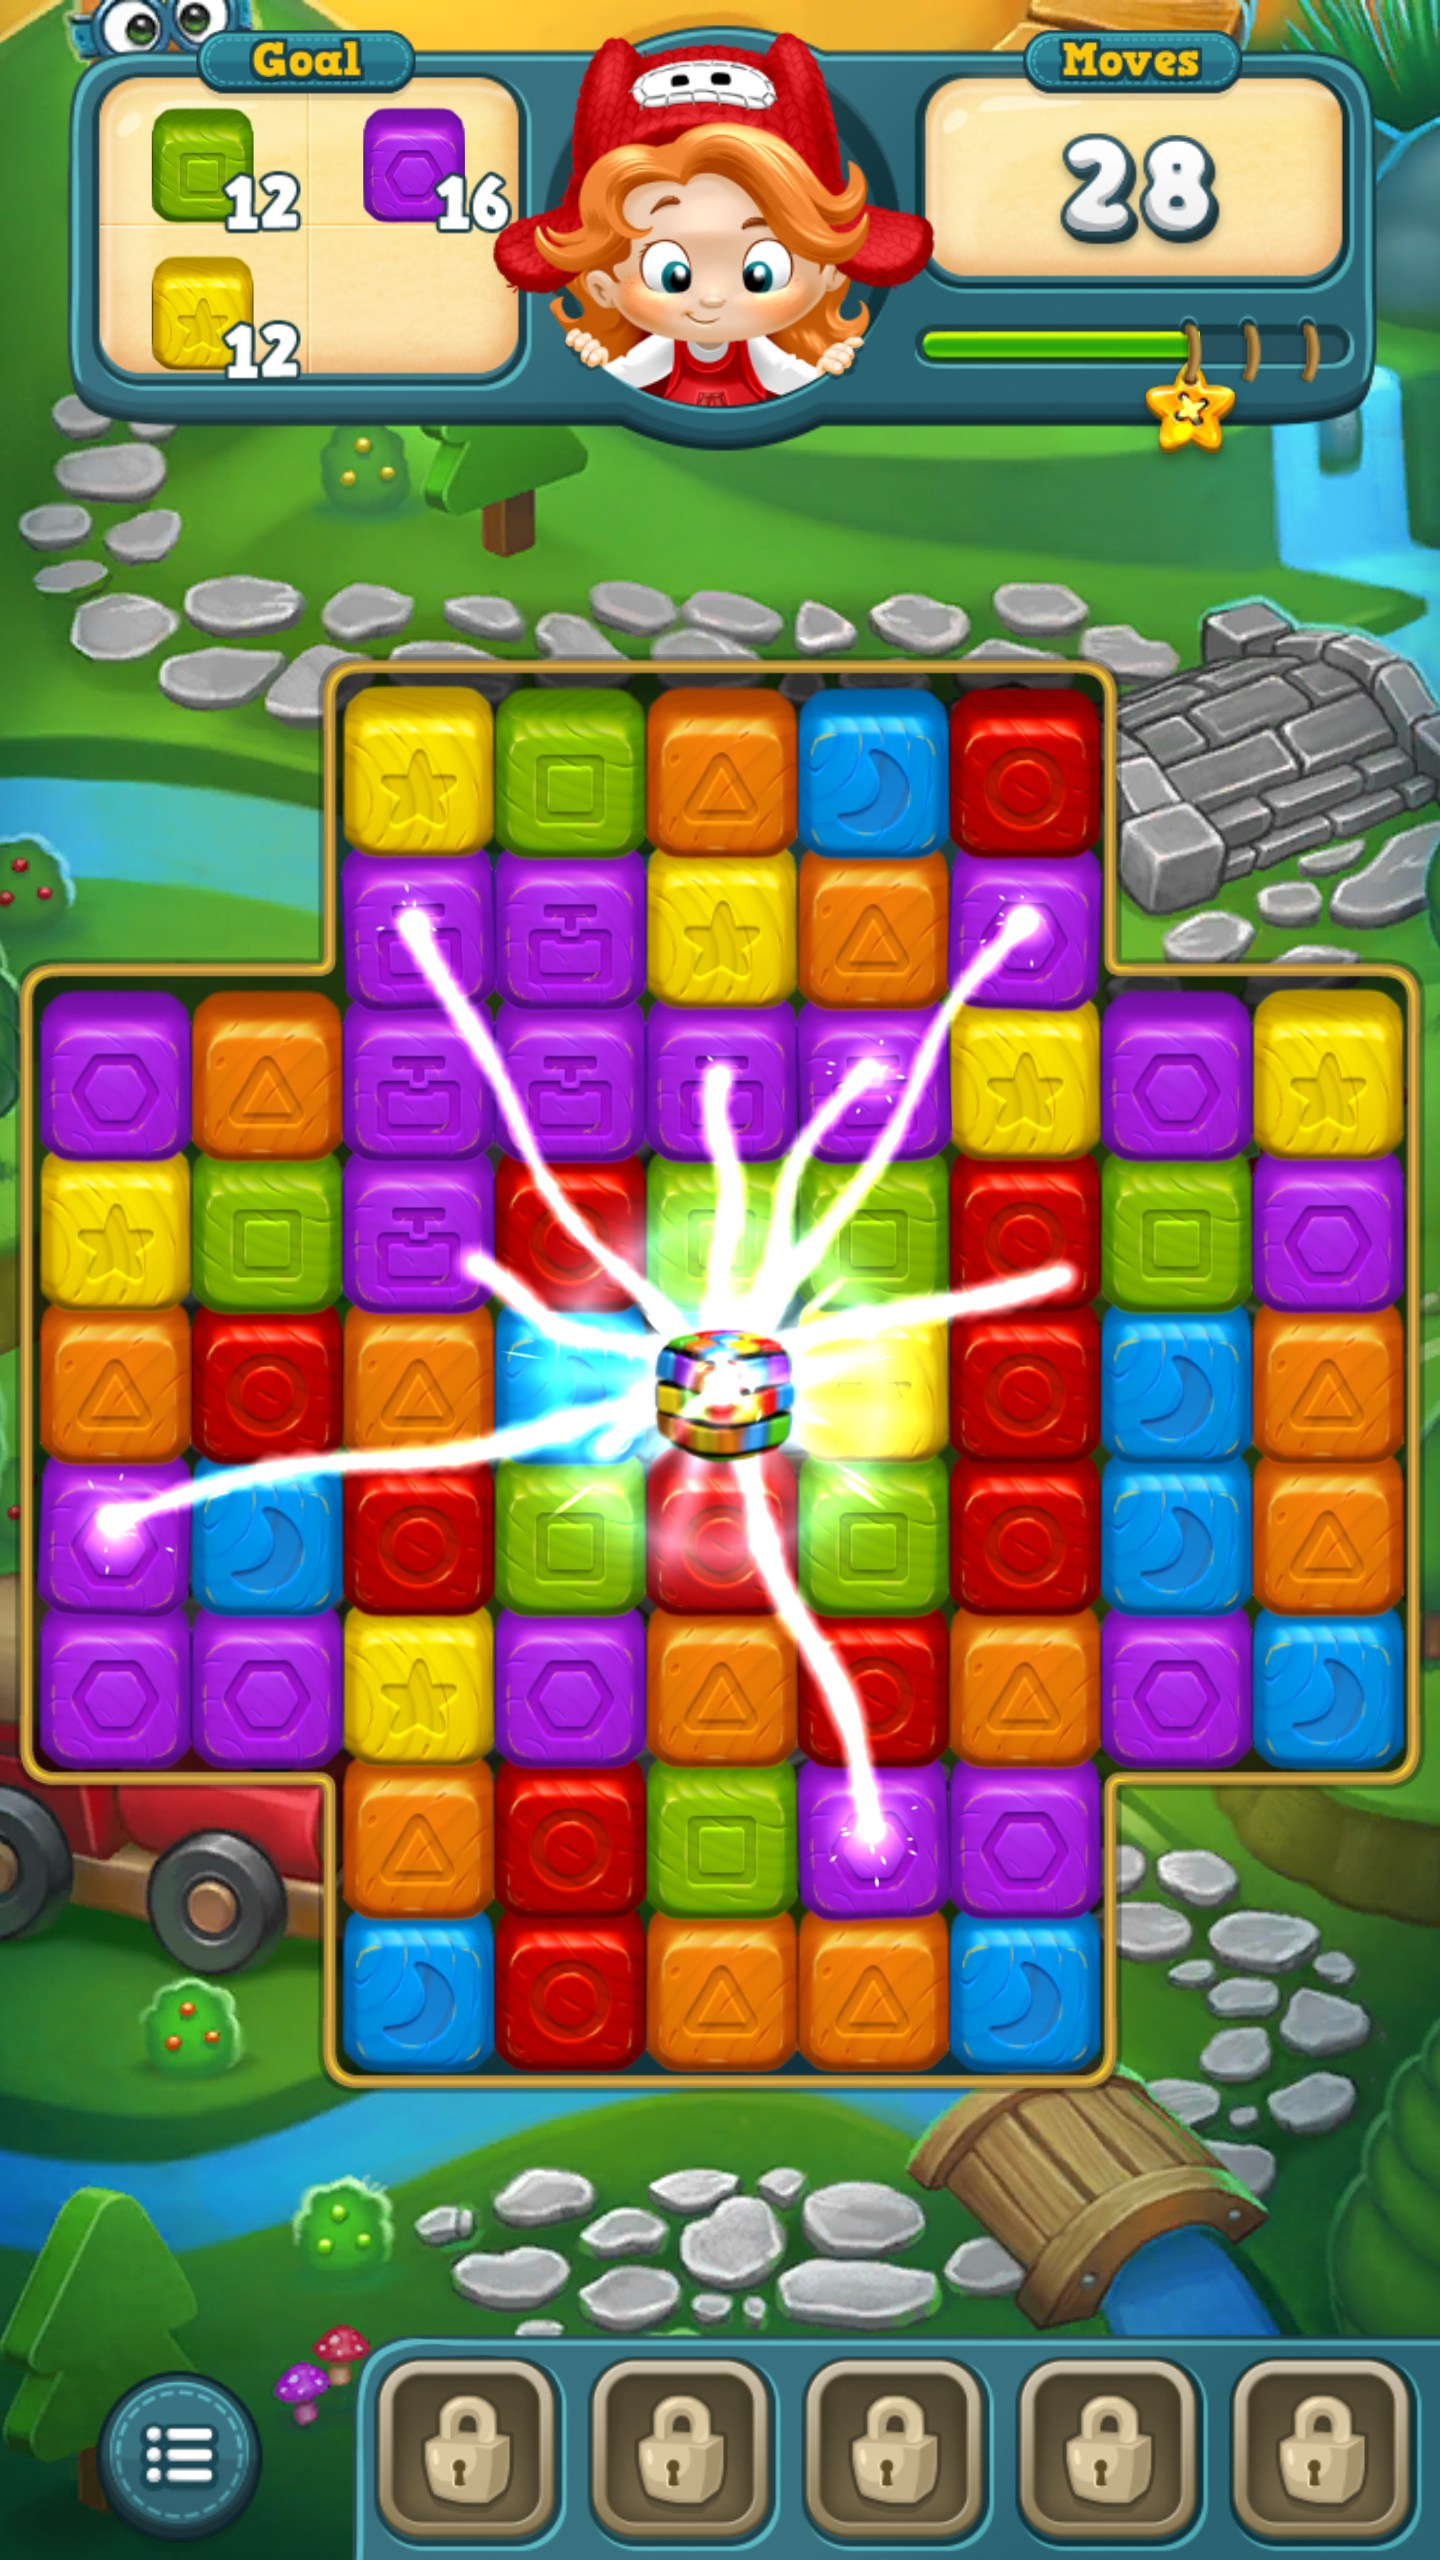 Toy Blast Free Download : Toy blast for dell venue free download games